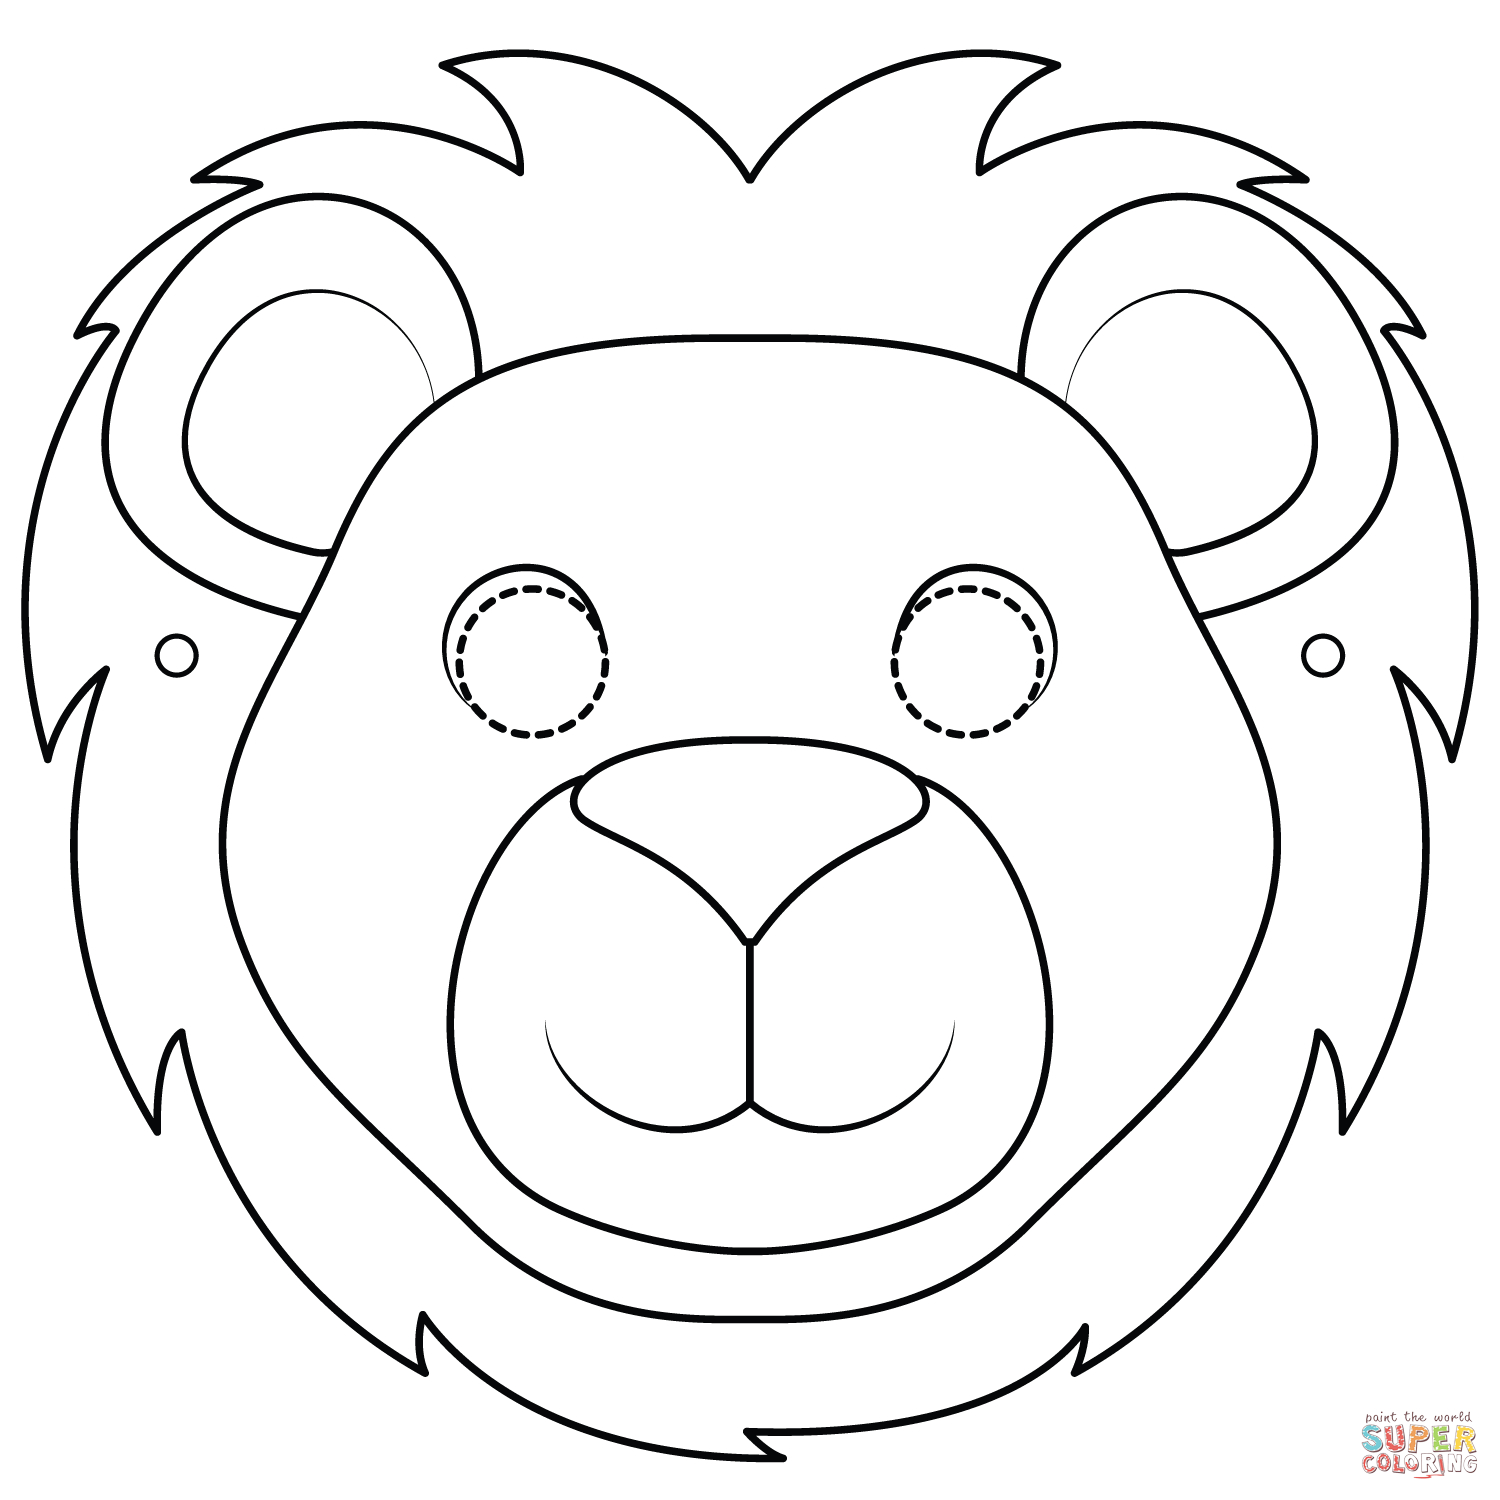 Lion Mask Coloring Page | Free Printable Coloring Pages - Free Printable Lion Mask